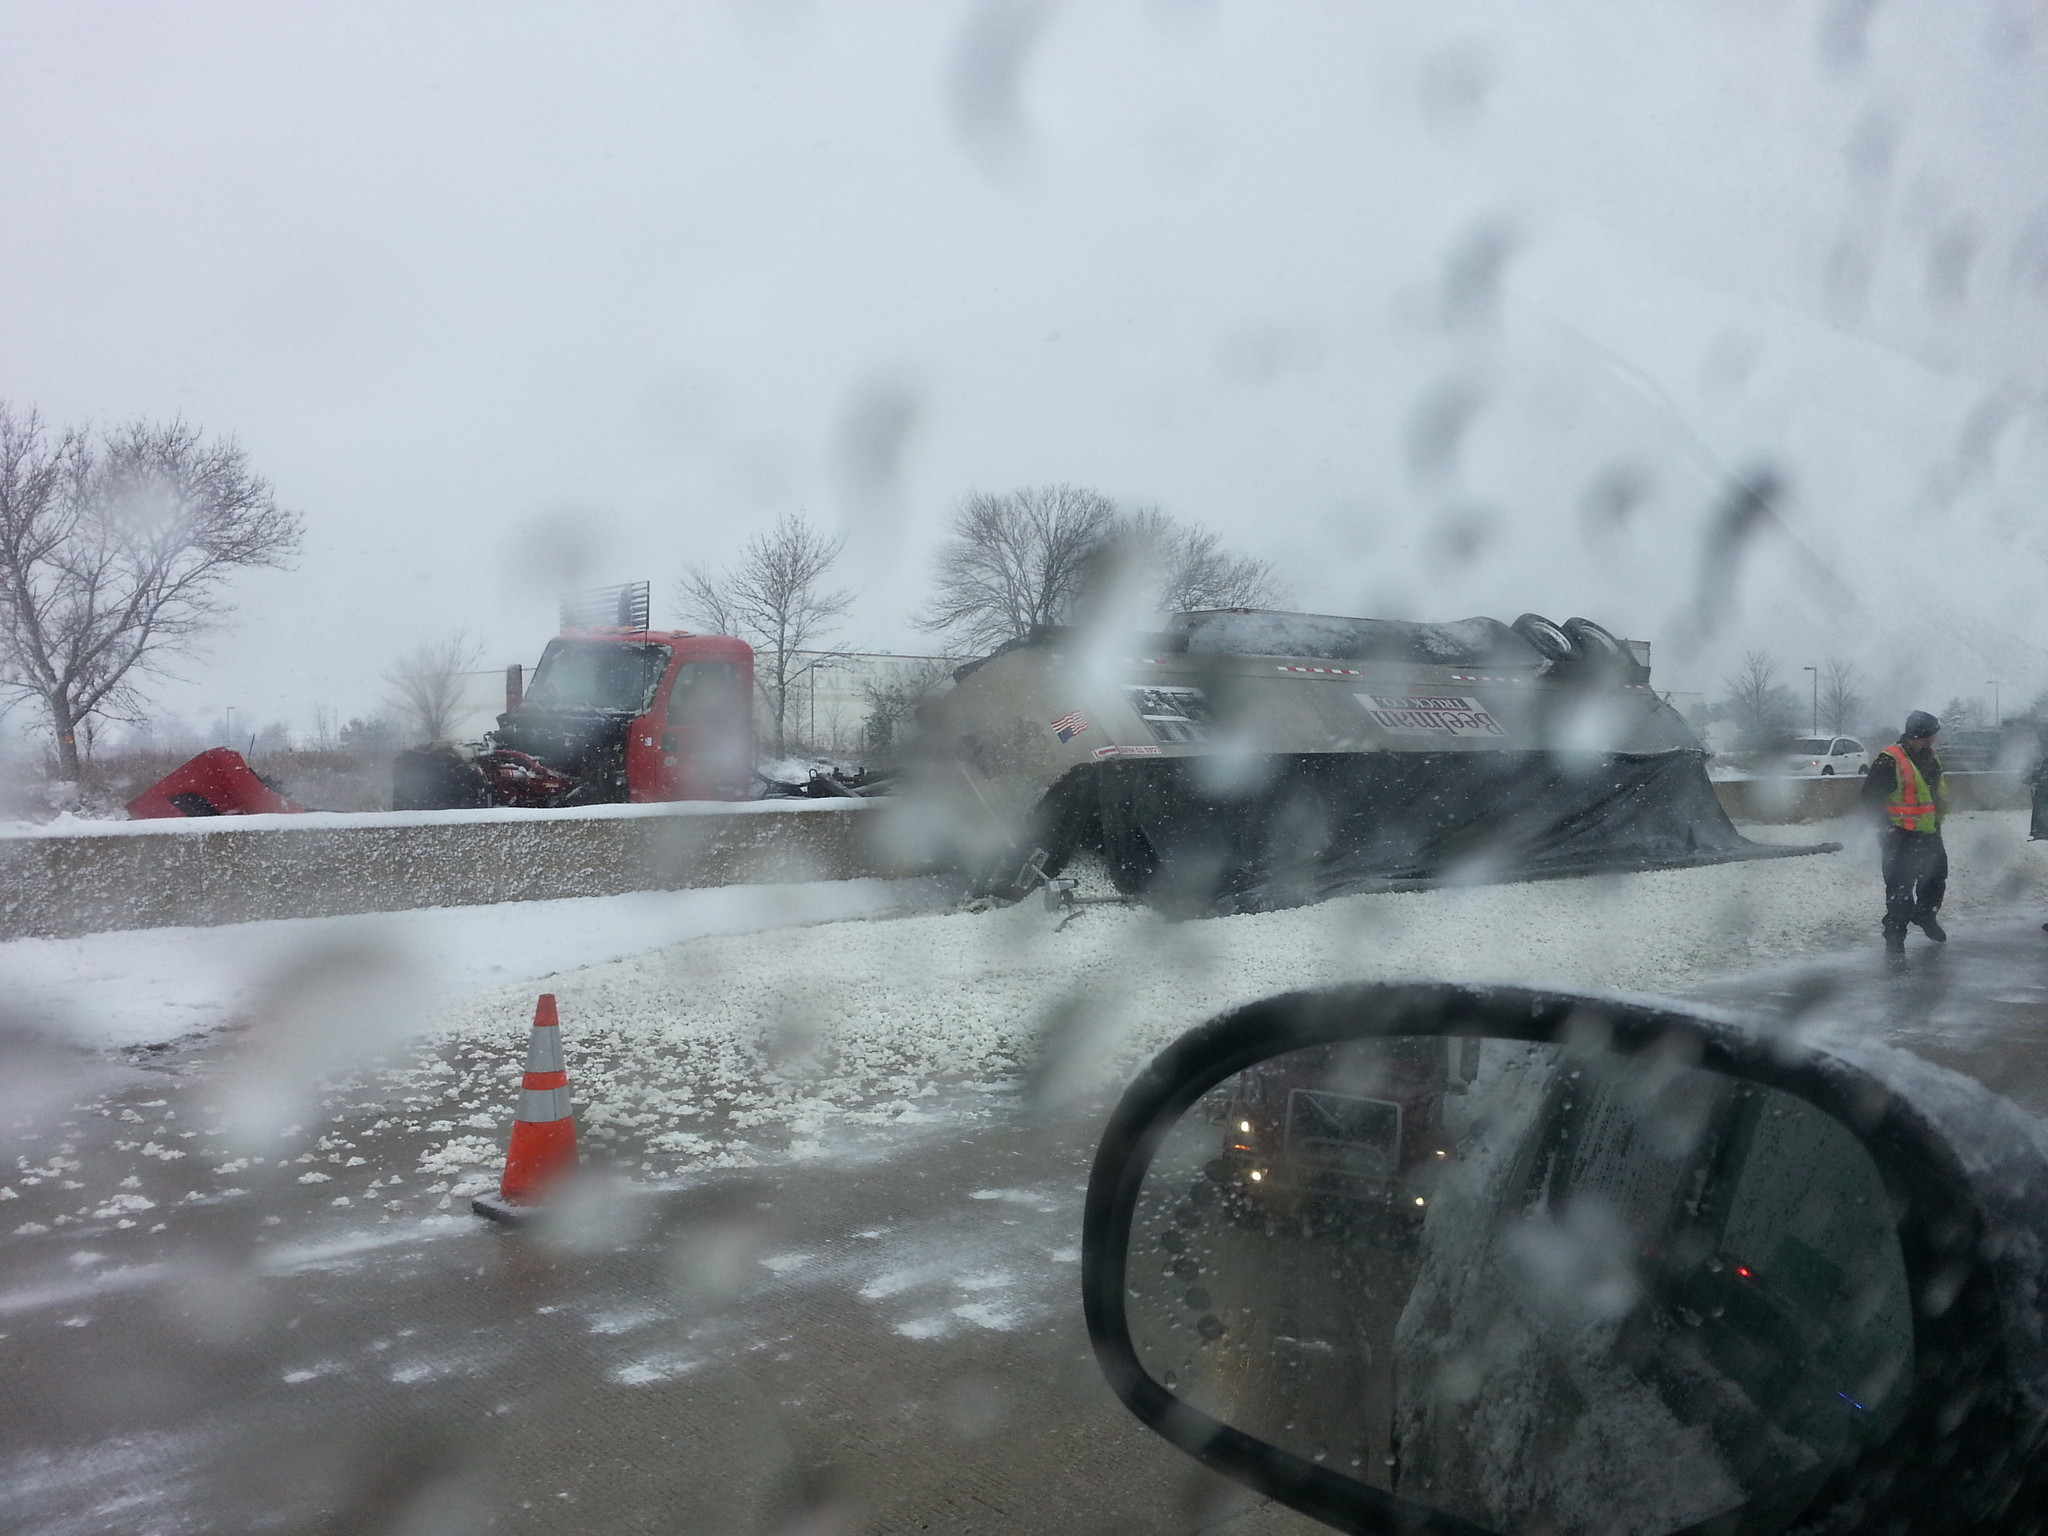 Some lanes reopen after semi accident on I-80 - Chicago Tribune